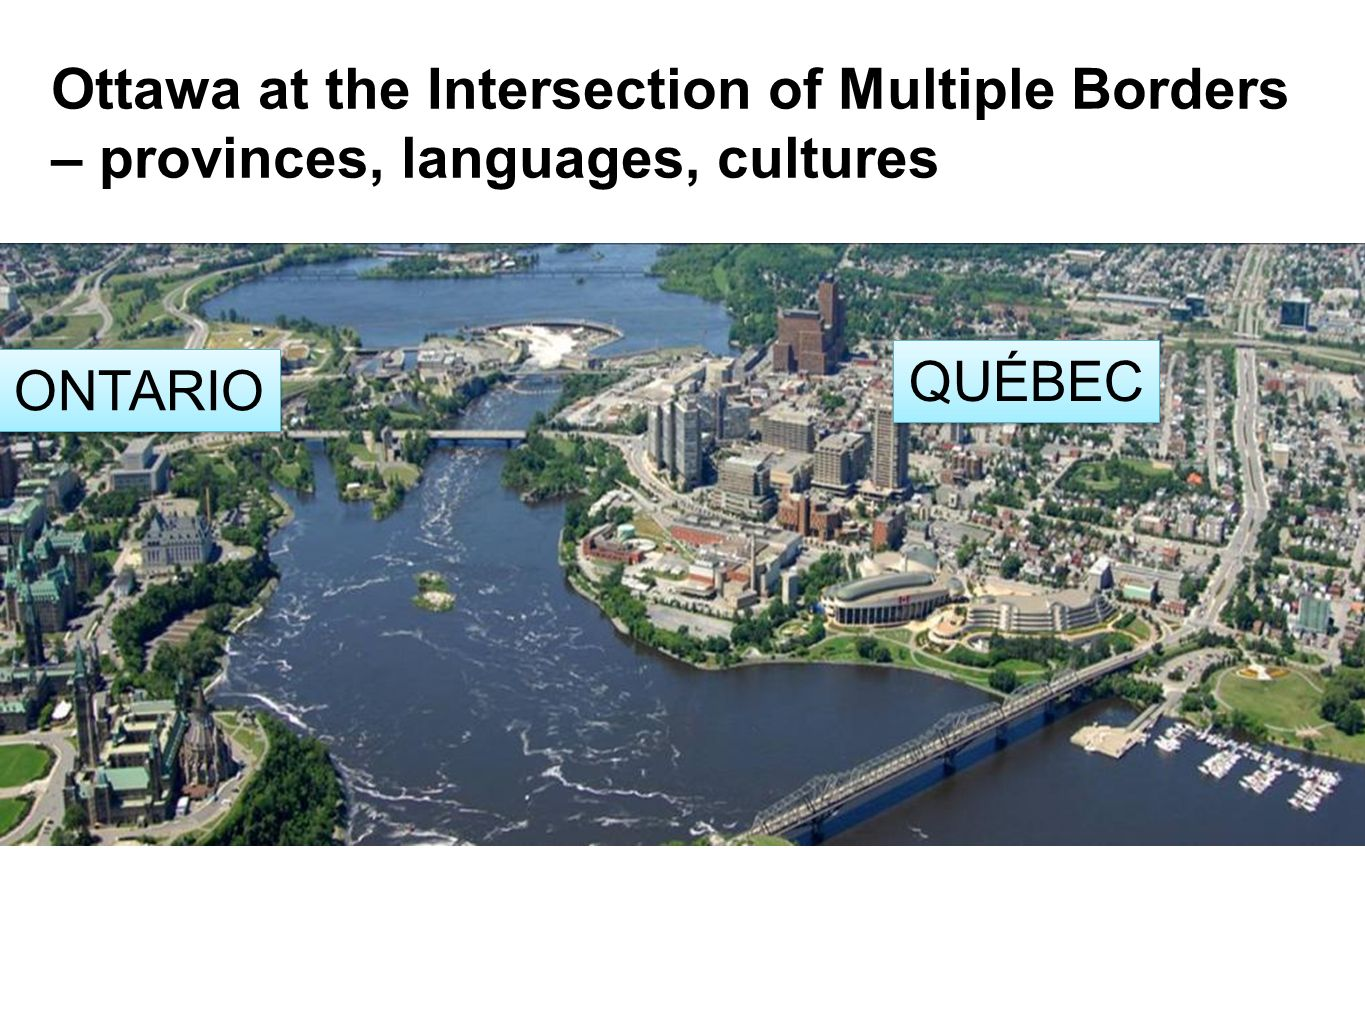 Régime d'immersion en français / French Immersion Studies Ottawa at the Intersection of Multiple Borders – provinces, languages, cultures QUÉBEC ONTAR